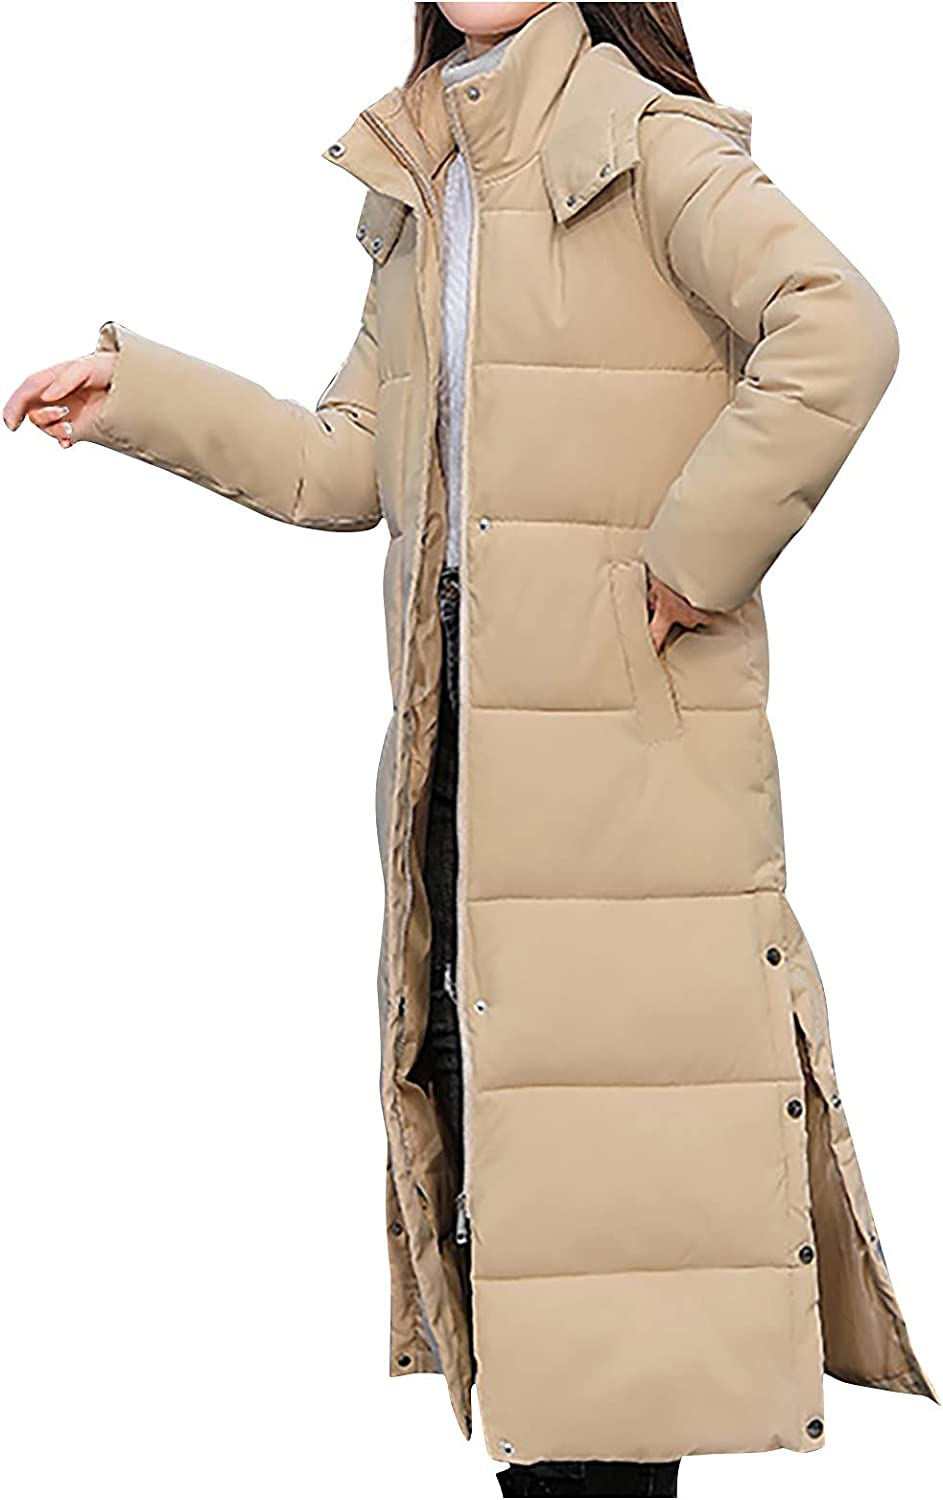 Women's Winter Warm Thicken Down Coats Hooded Zipper Puffer Jacket With Pockets Quilted Long Overcoat Casual